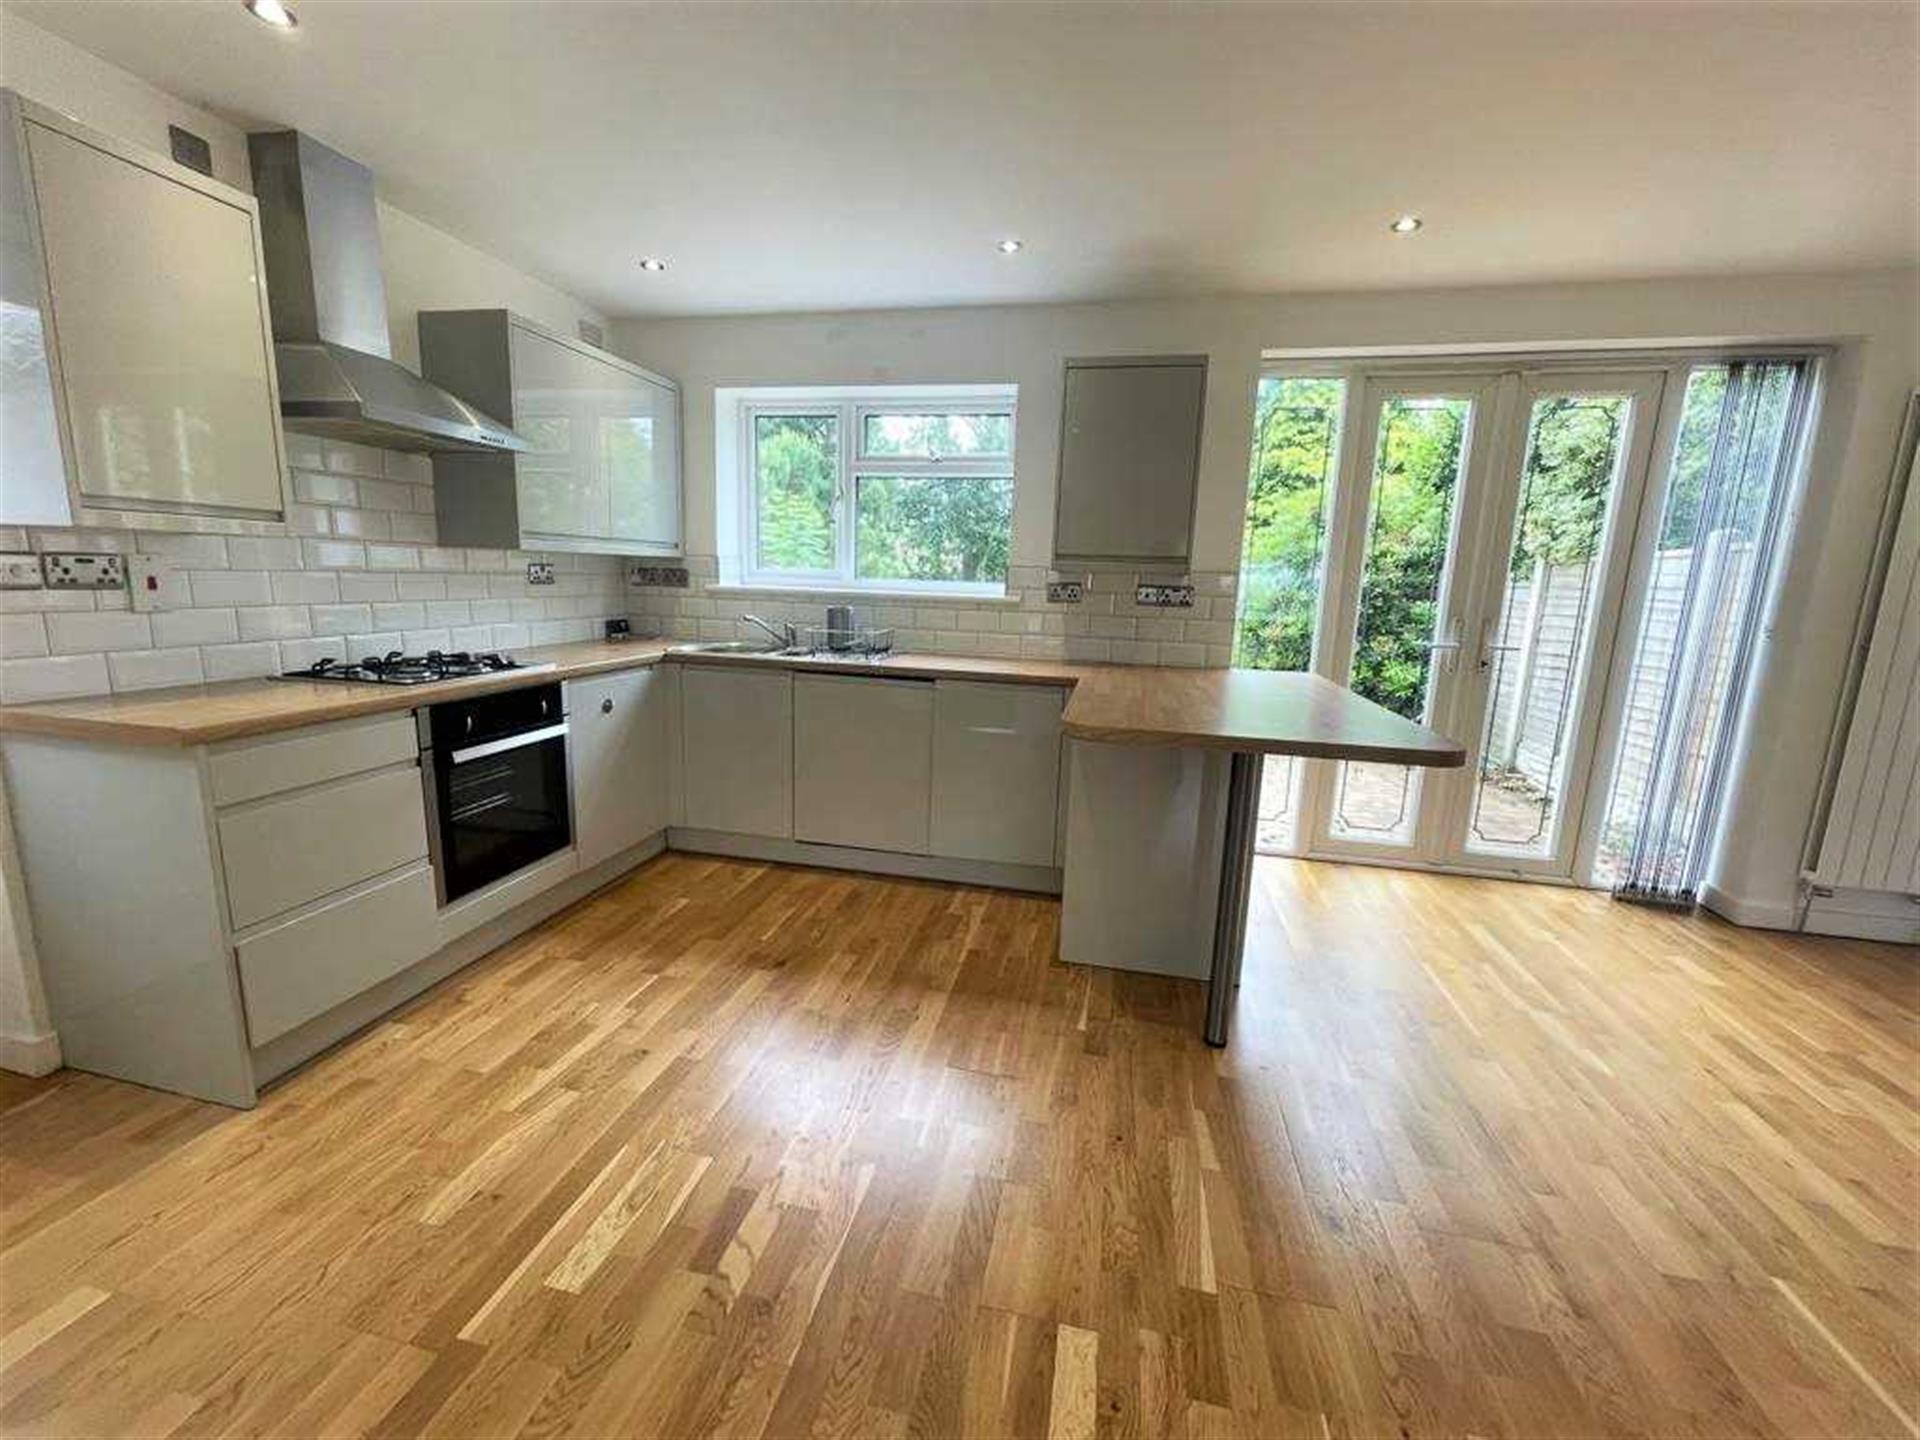 3 Bedroom Semi-detached House For Sale - Kitchen Area